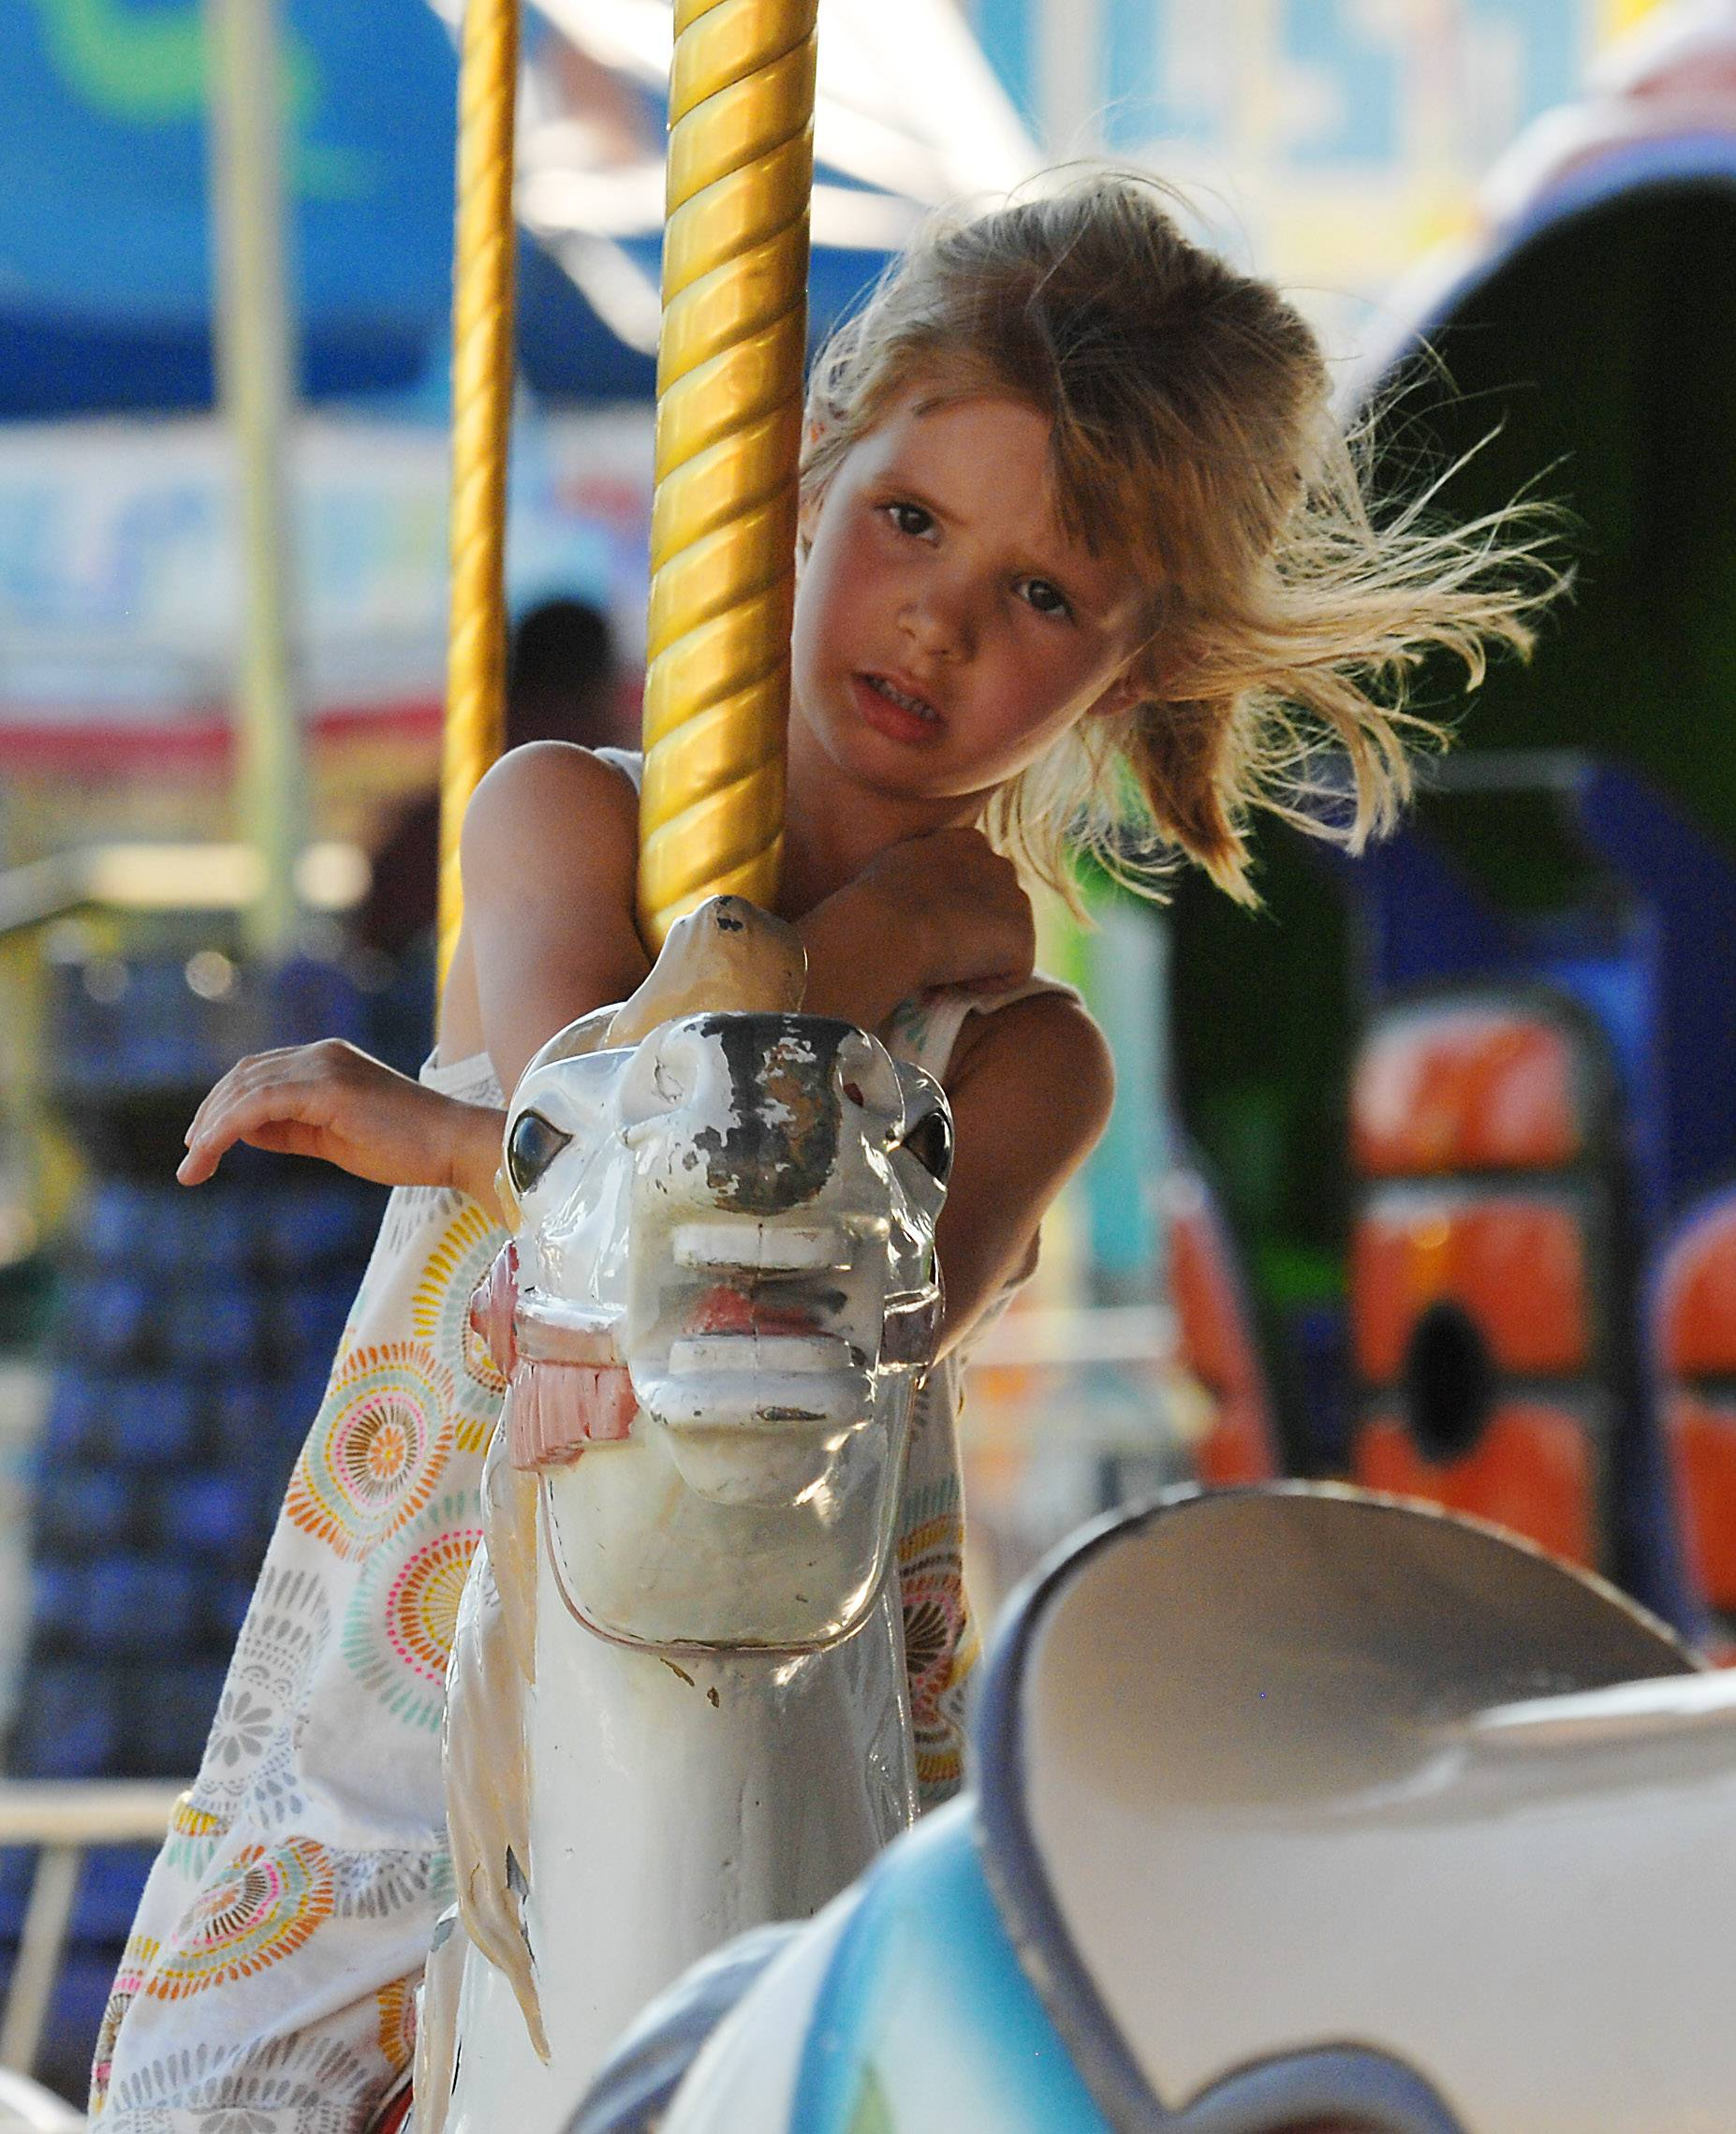 A 4-year-old girl holds on tight as she rides the merry-go-round at the 2012 Elk Grove RotaryFest.